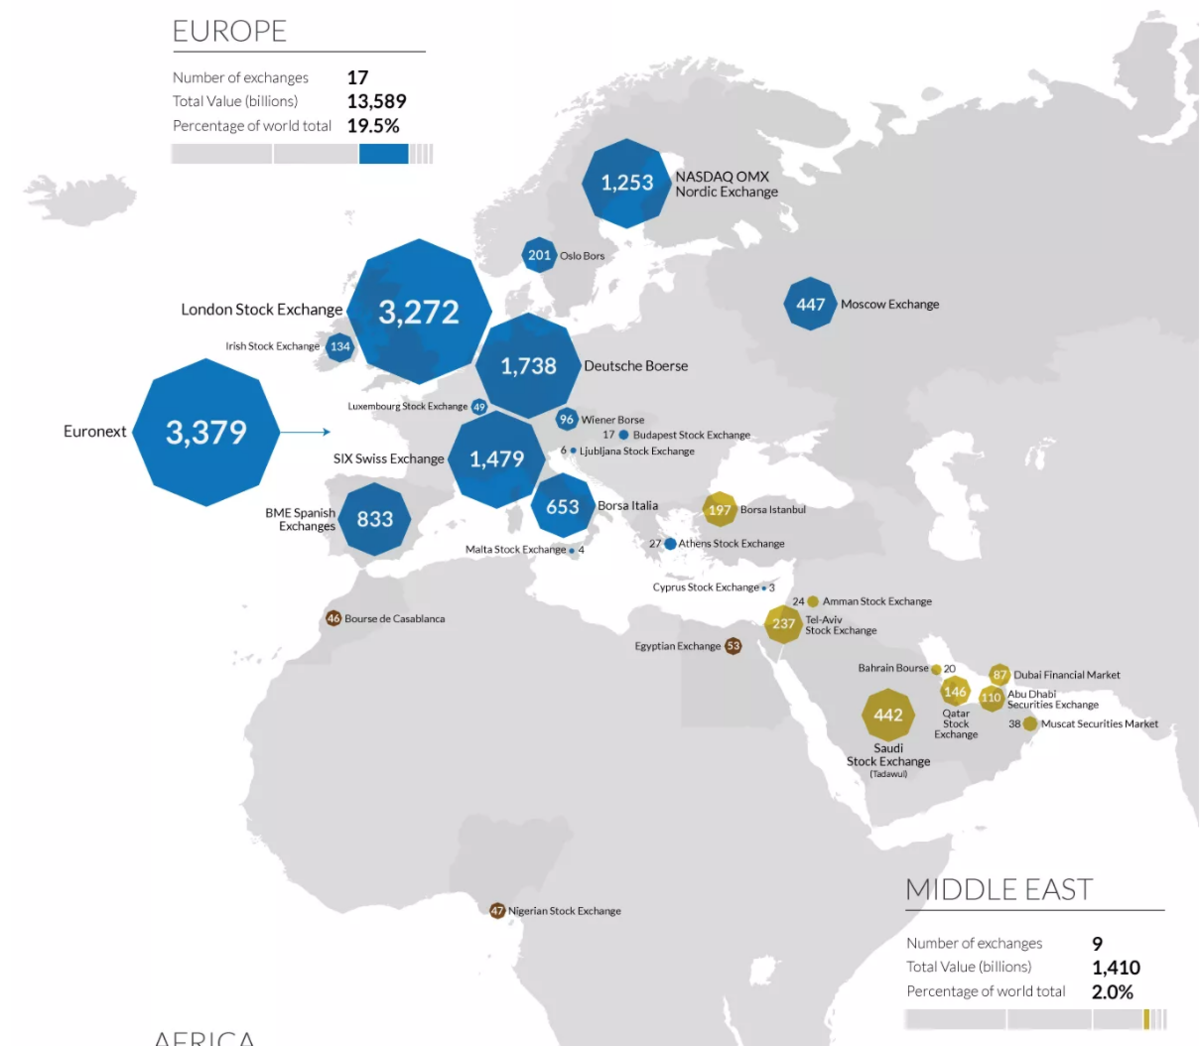 Источник: http://money.visualcapitalist.com/all-of-the-worlds-stock-exchanges-by-size/